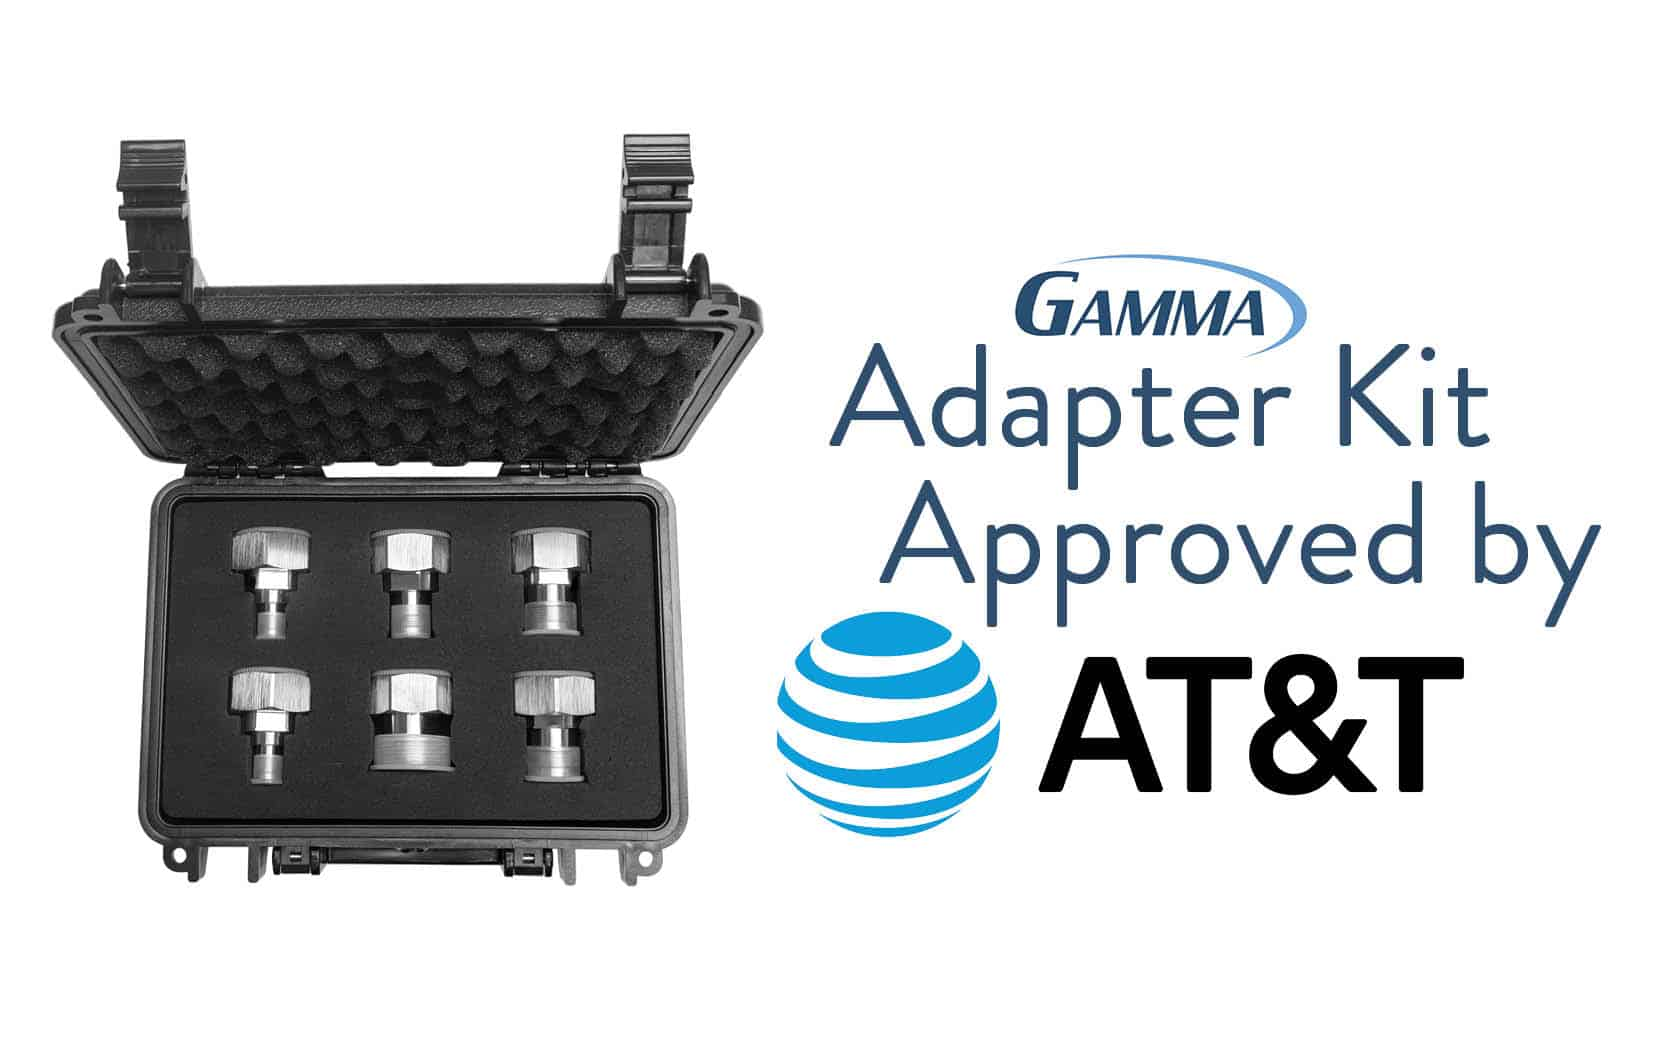 Gamma Adapter Kit Approved by AT&T